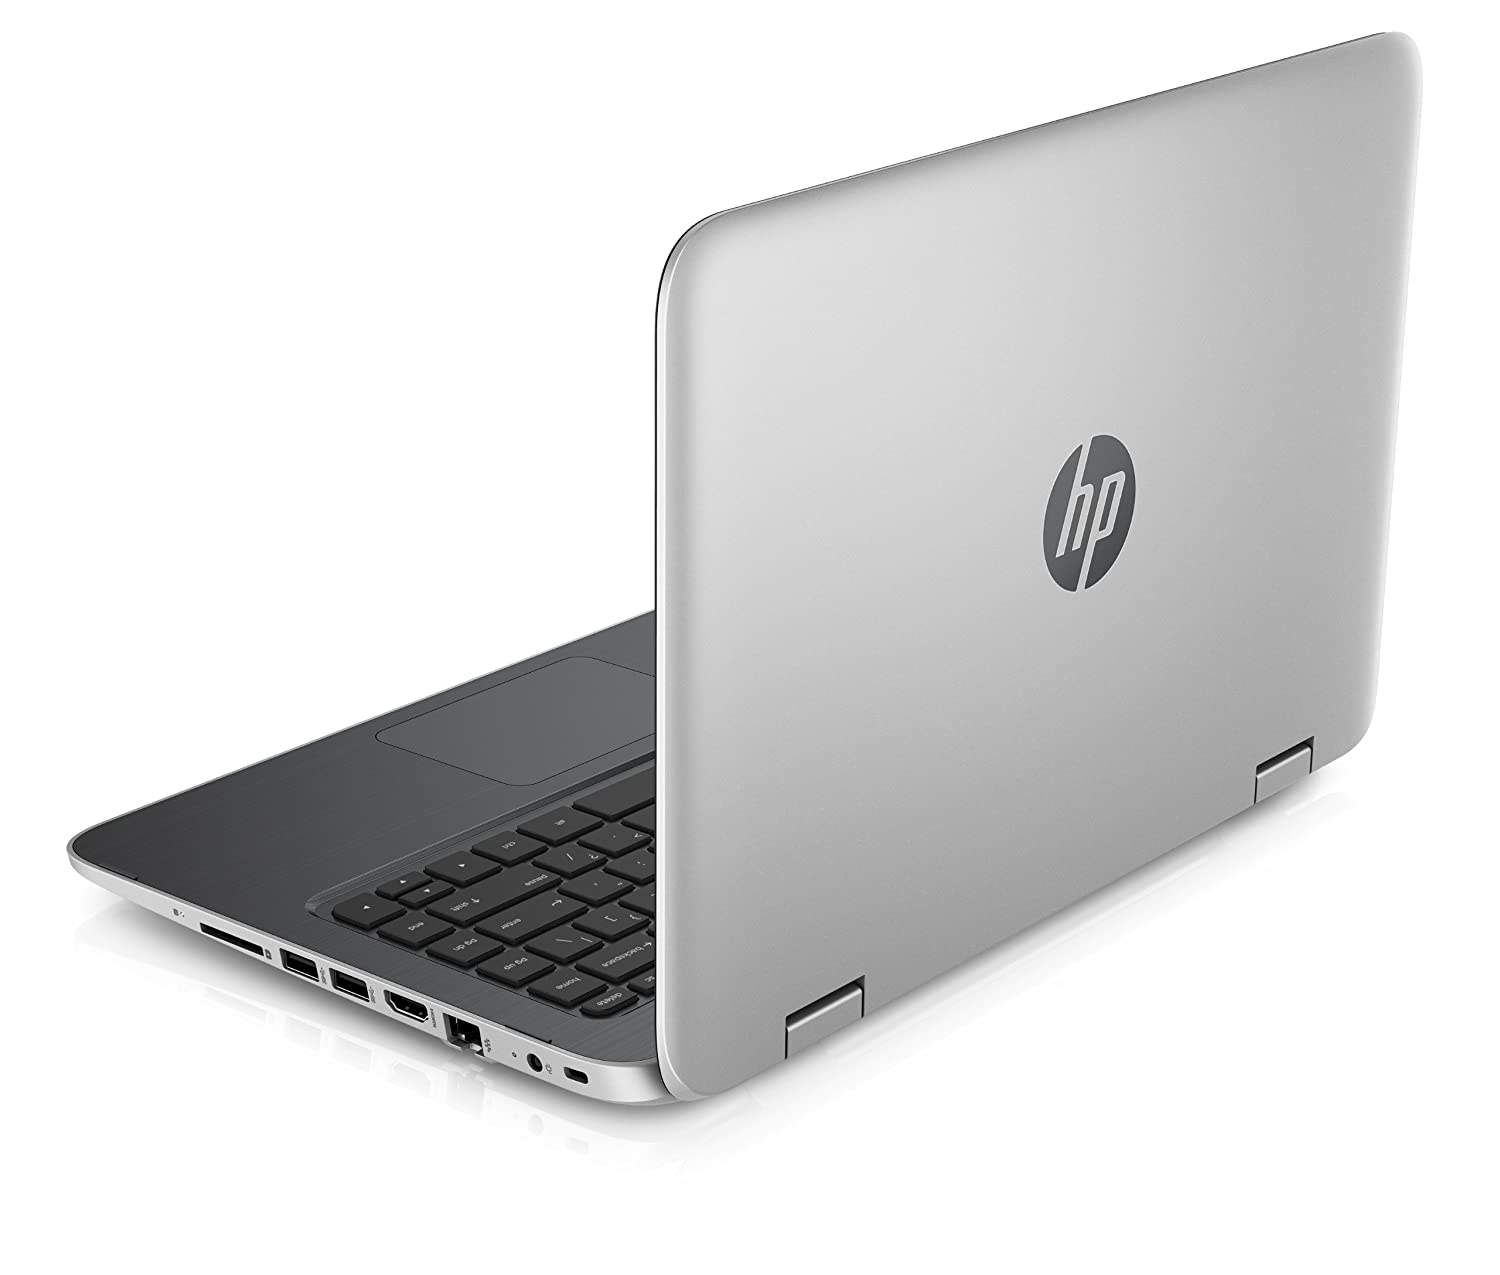 Hp notebook x64-based pc - Amazon Com Hp Pavilion X360 13 A010nr 13 3 Inch 2 In 1 Convertible Touchscreen Laptop Computers Accessories